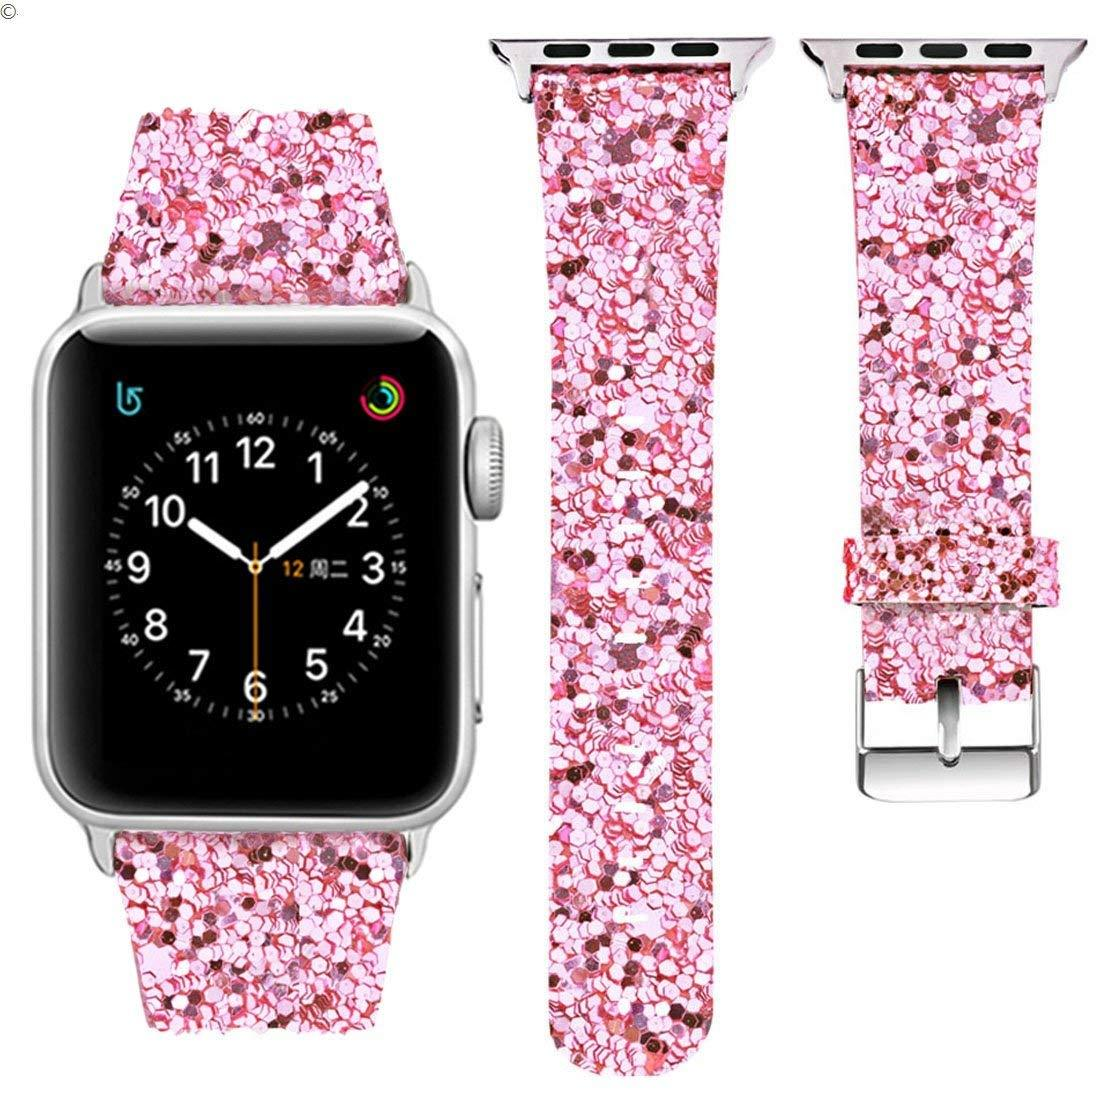 2018-Extreme Deluxe Shiny Bling Glitter Leather Wristband Apple watch band